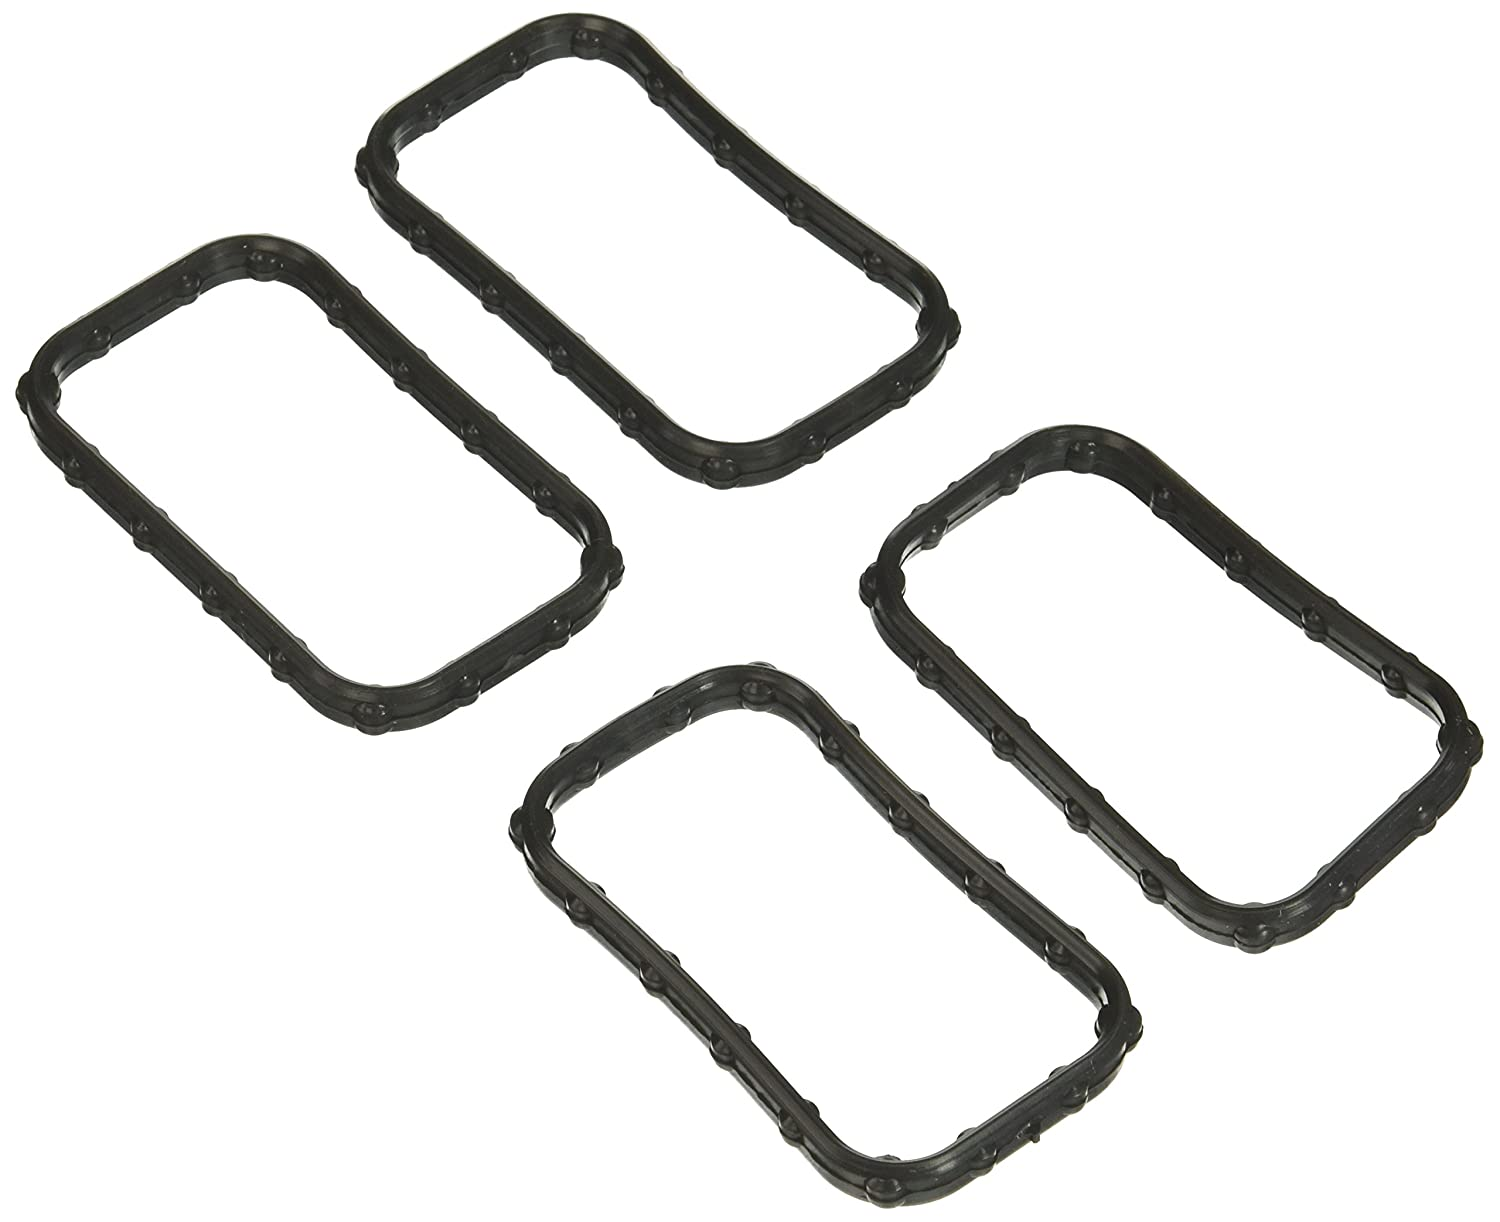 MAHLE Original MS19521 Fuel Injection Plenum Gasket Set